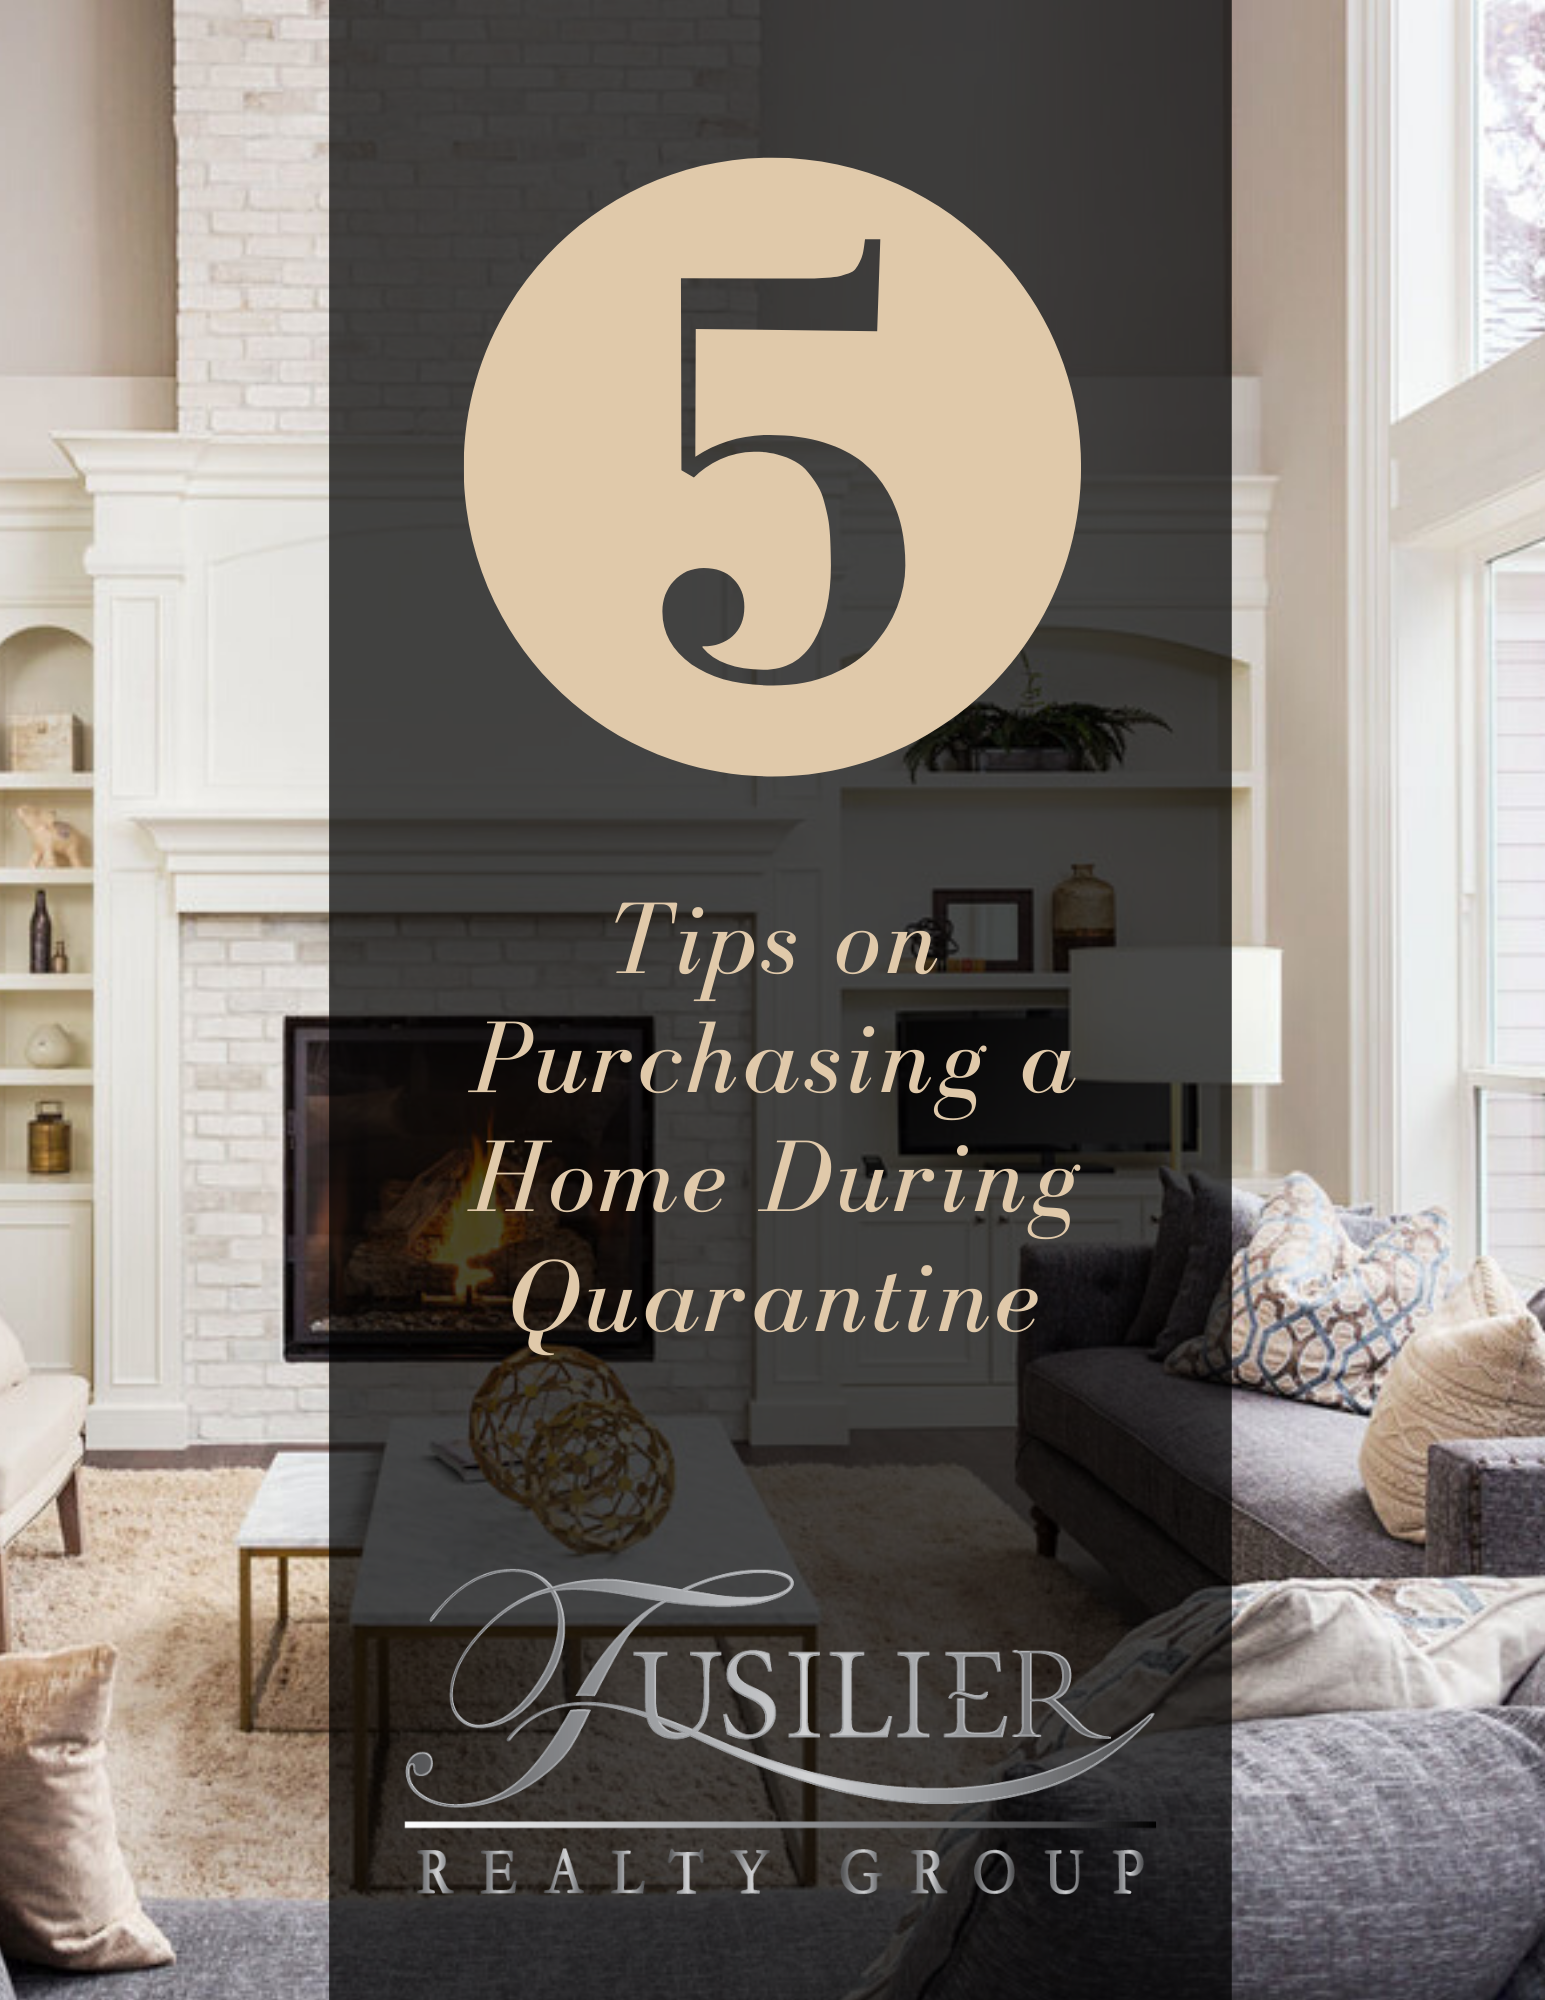 5 Tips on Purchasing a Home During Quarantine